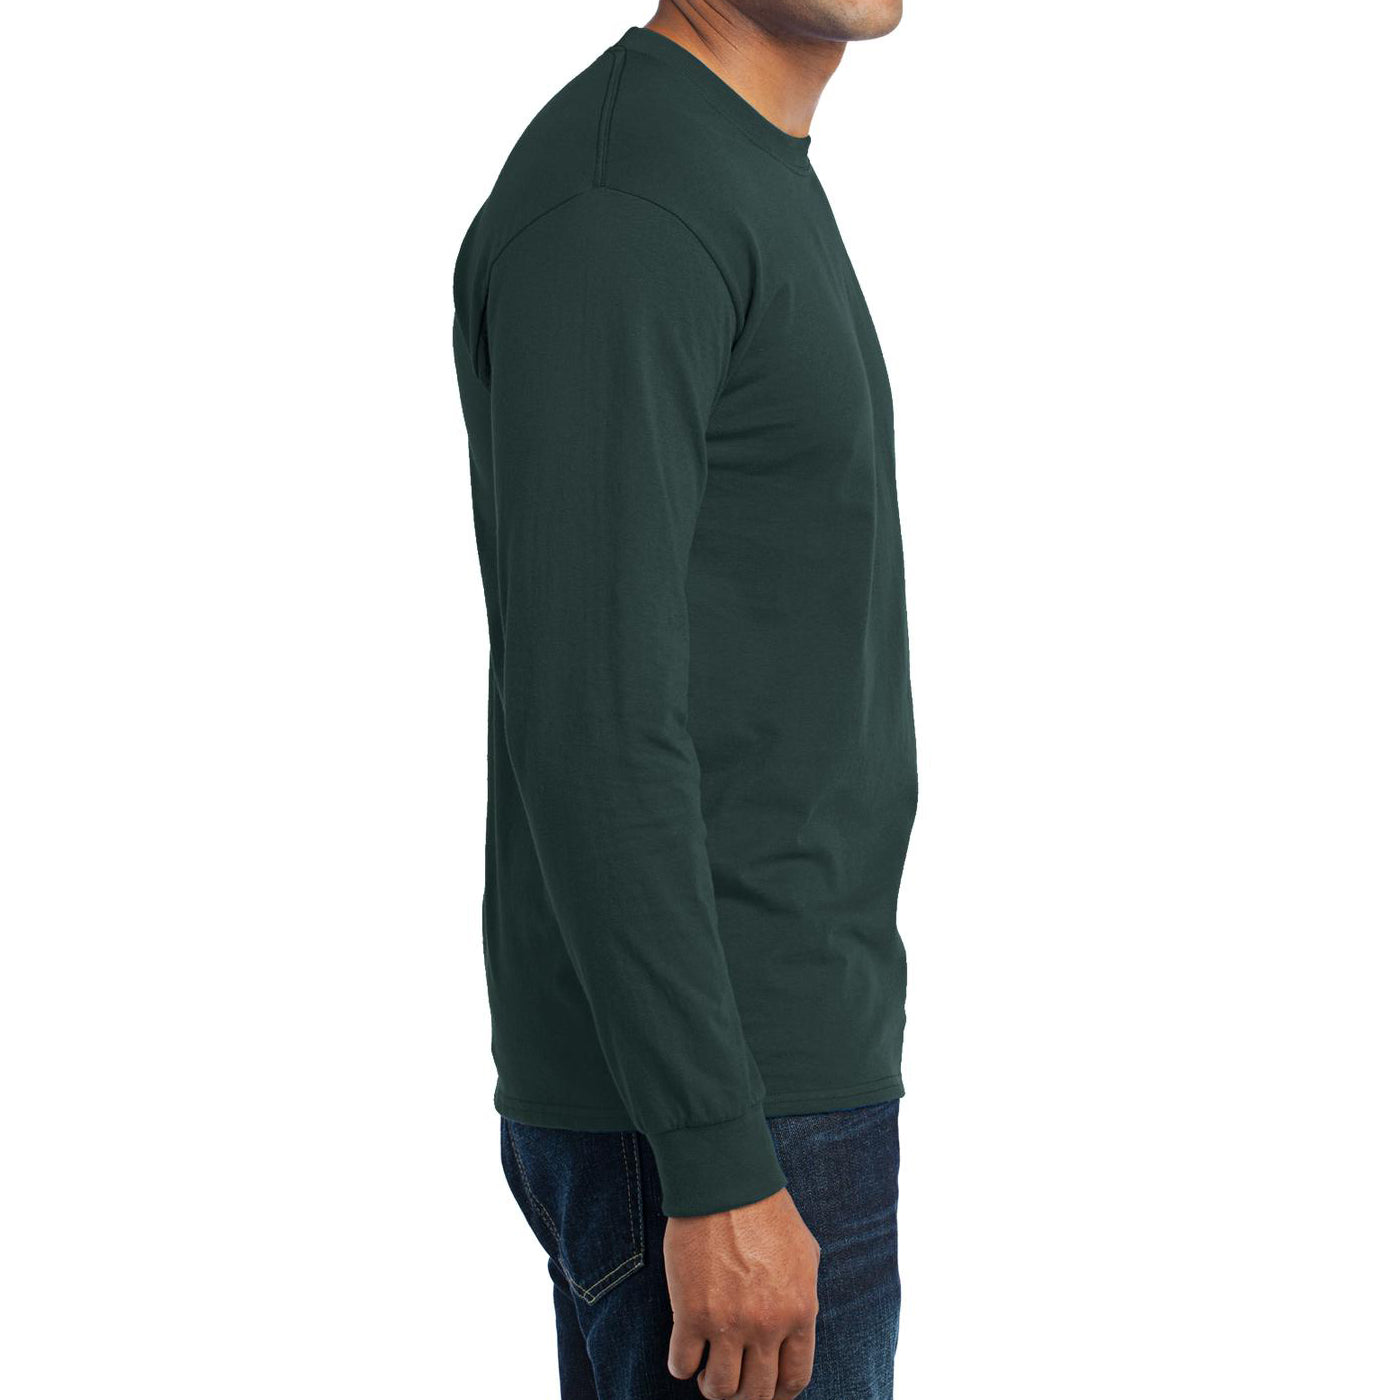 Men's Long Sleeve Core Blend Tee - Dark Green – Side